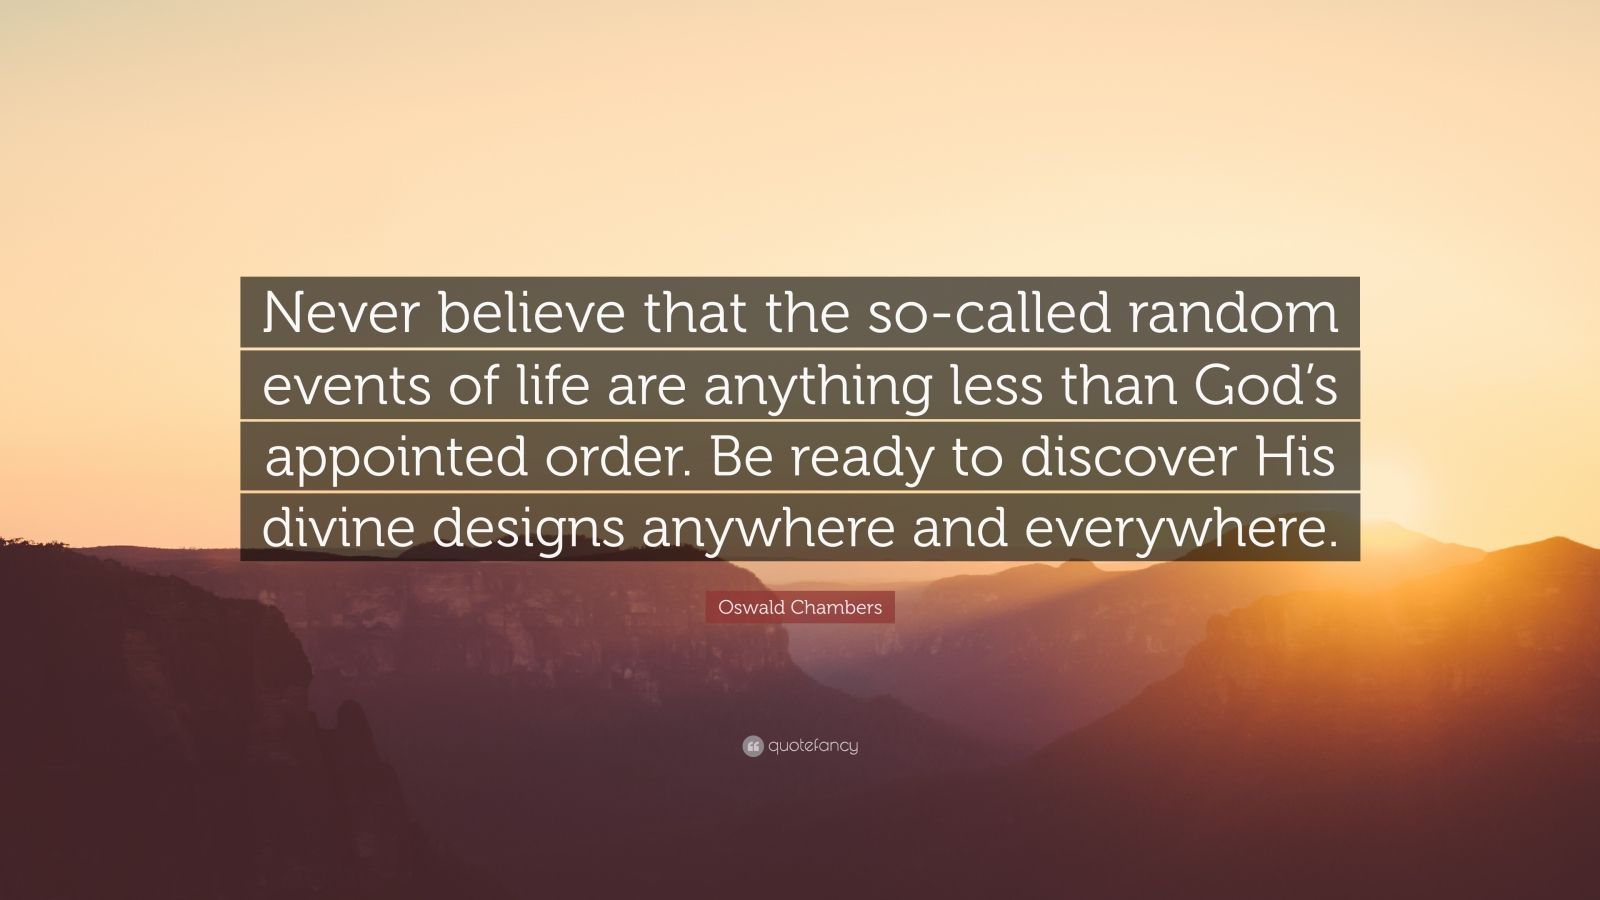 """Oswald Chambers Quote: """"Never believe that the so-called random events of life are anything less than God's appointed order. Be ready to discover His divine designs anywhere and everywhere."""""""